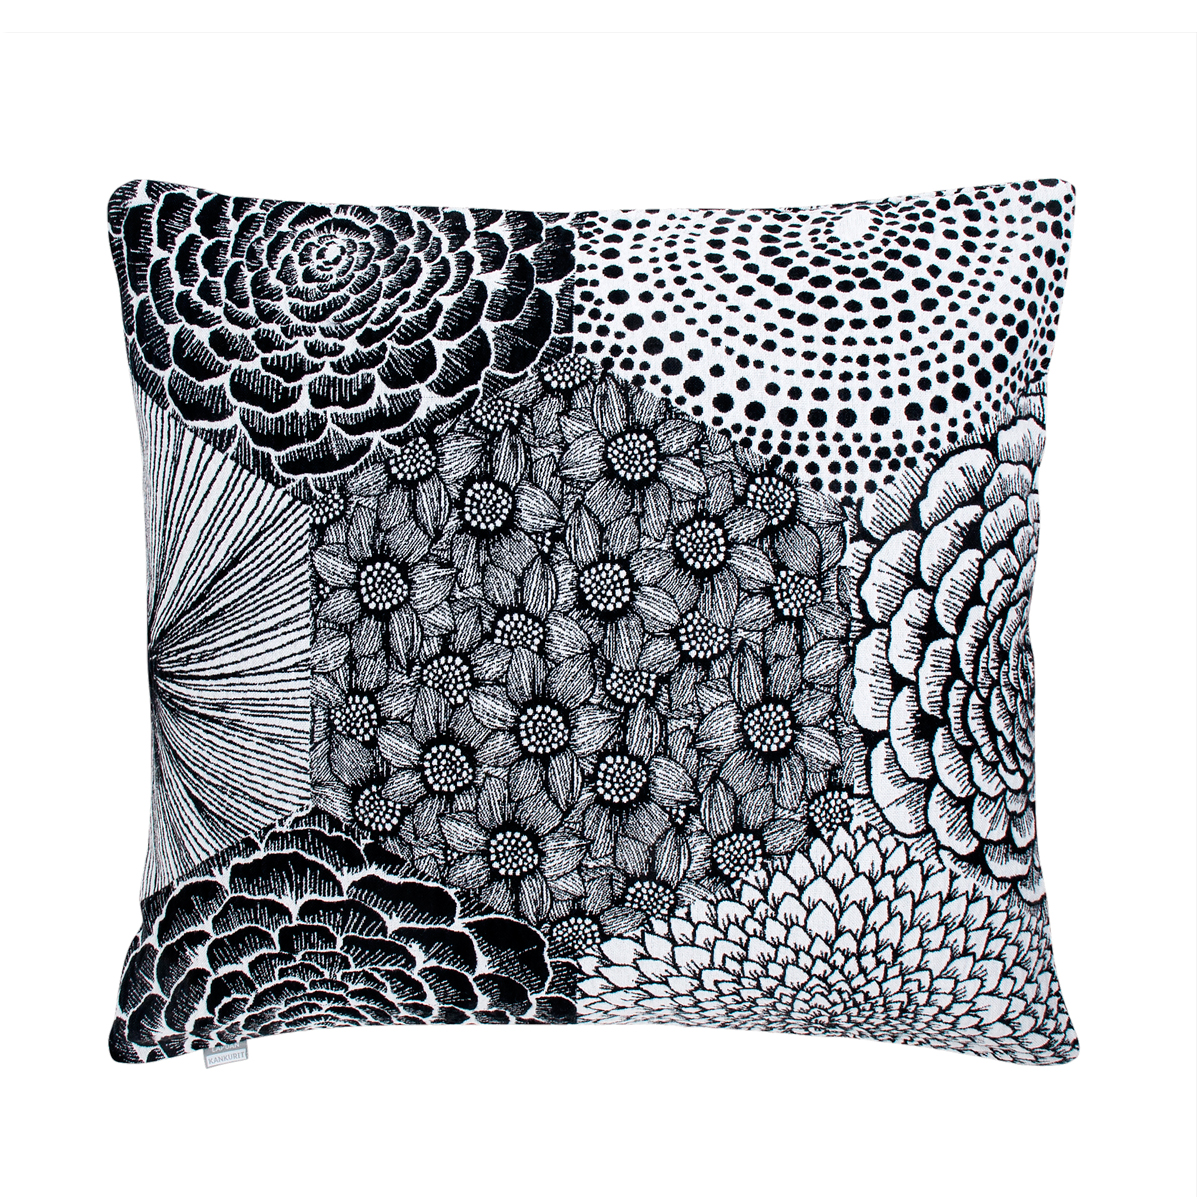 leather fringe pillow couch bed pillows black for large with decorative throw best